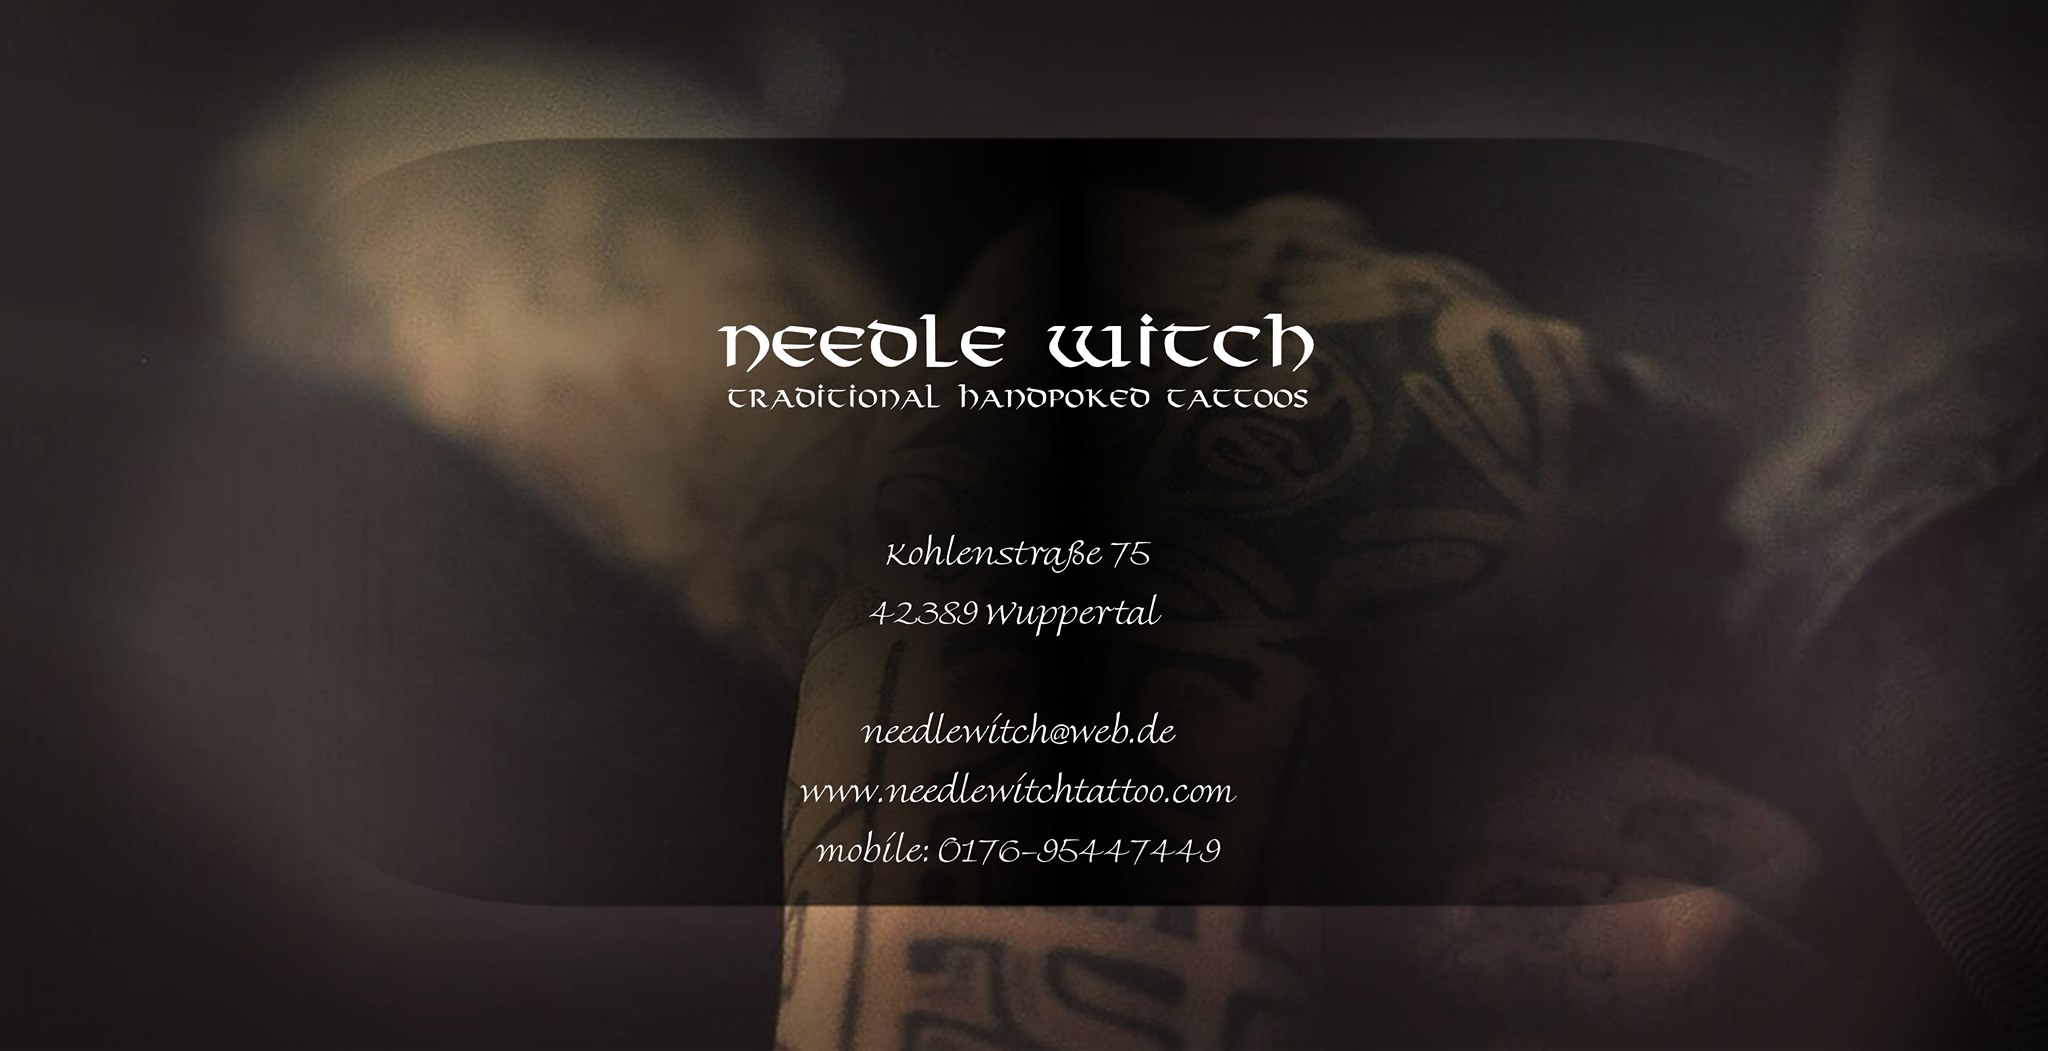 Needle Witch Tattoo